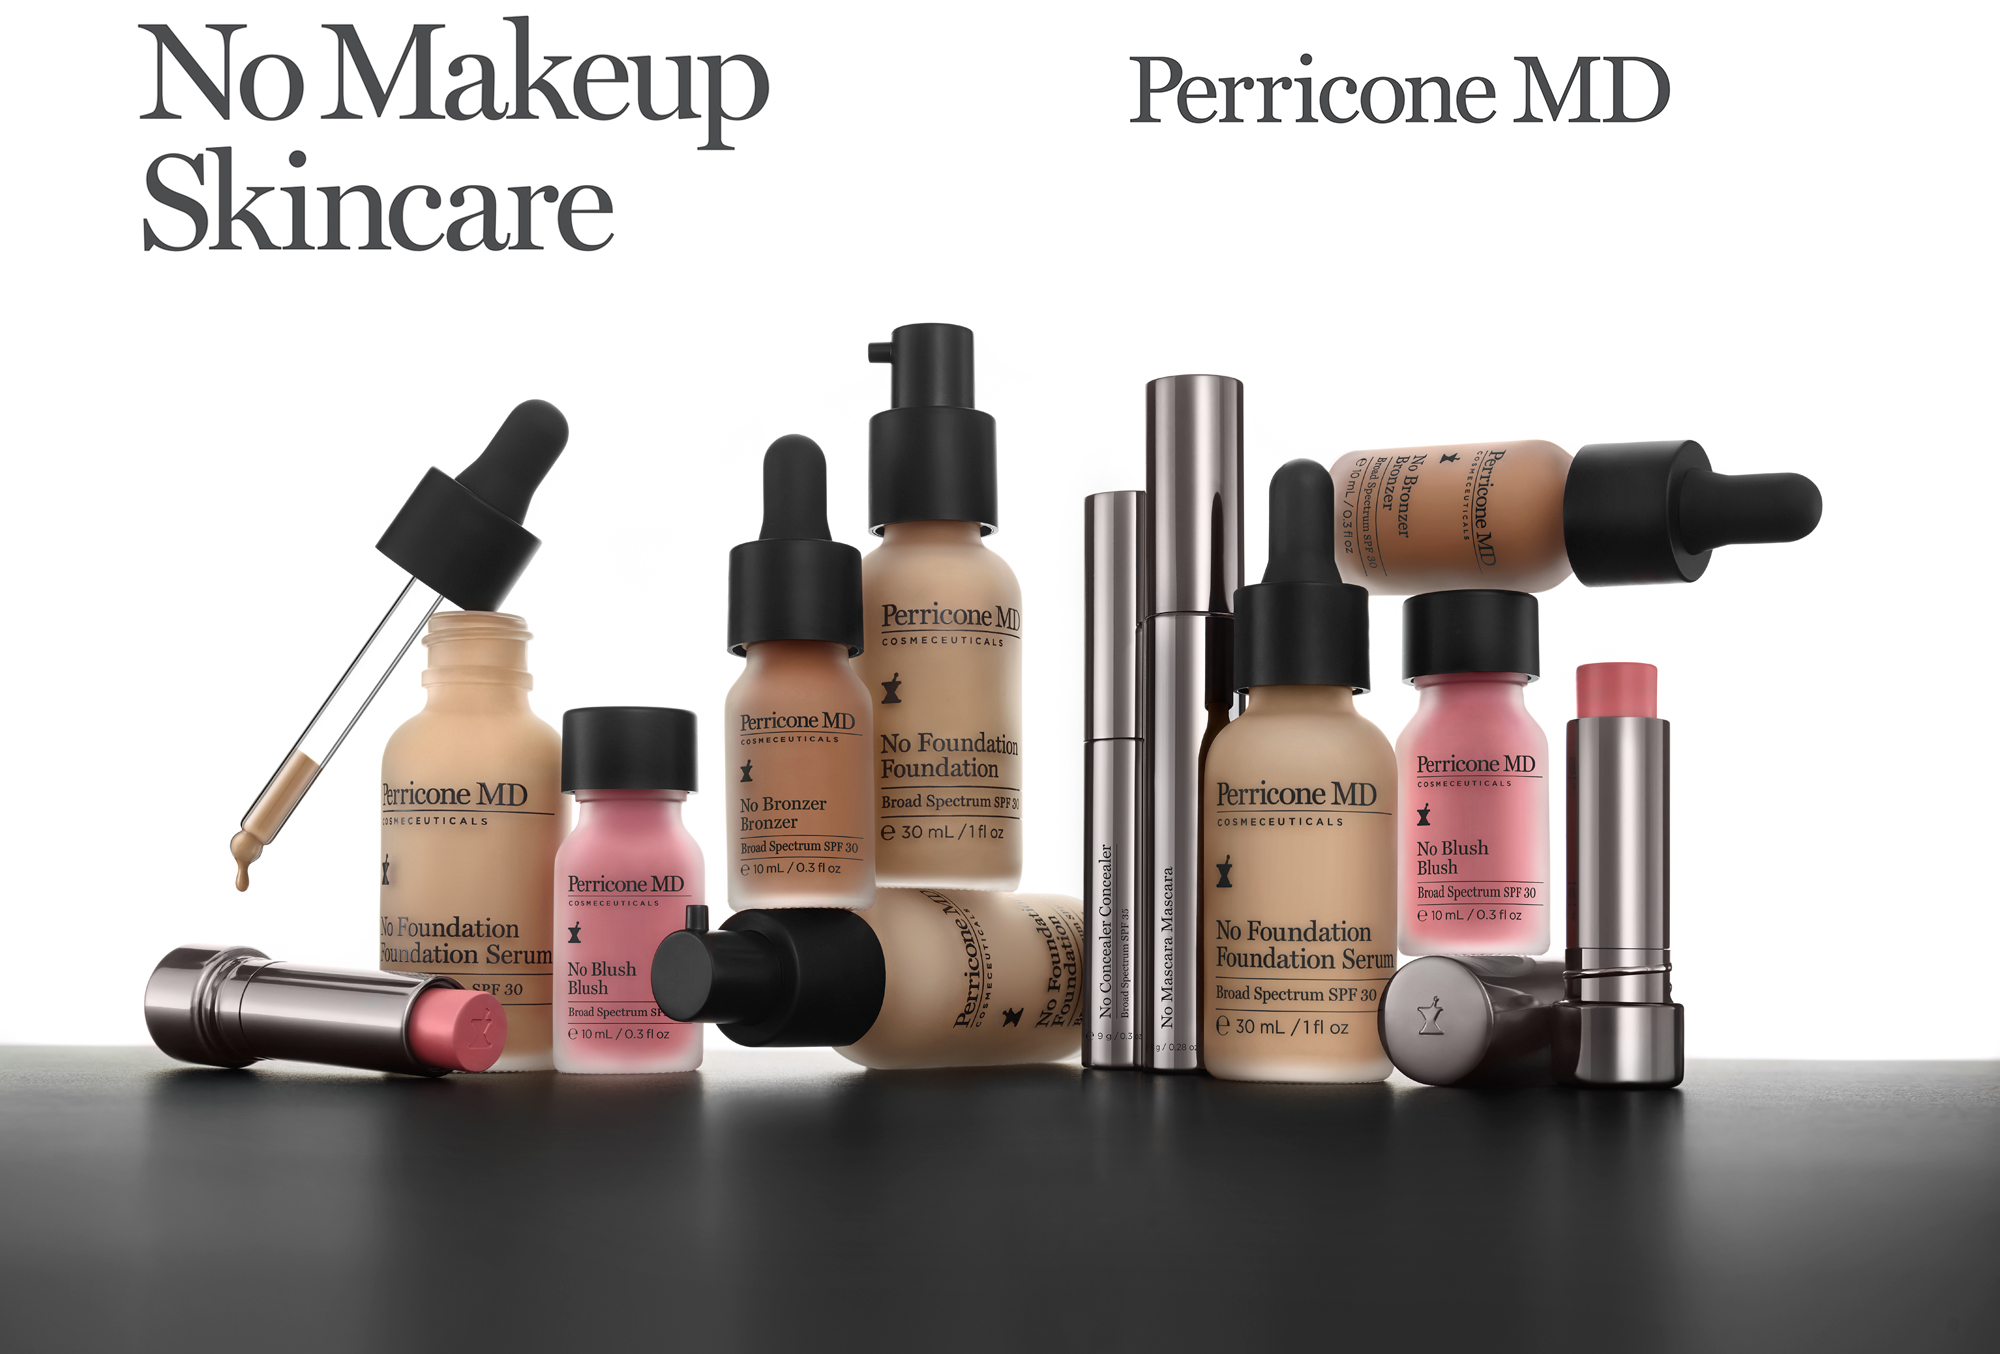 No makeup skincare Perricone md